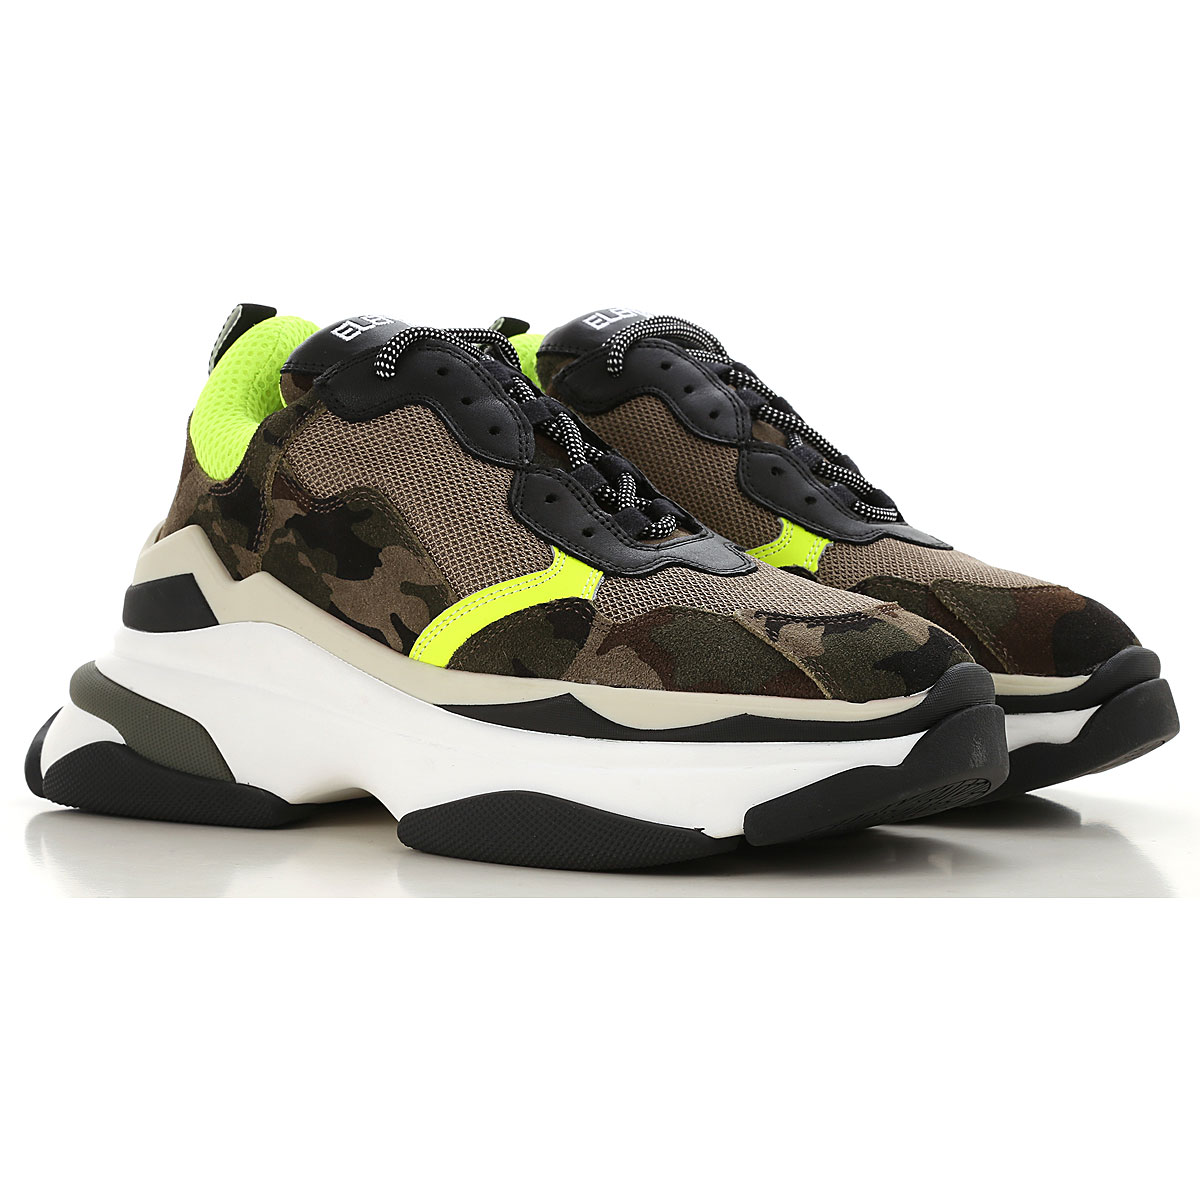 Image of Elena Iachi Sneakers for Women, camouflage, Fabric, 2017, 10 6 7 8 9